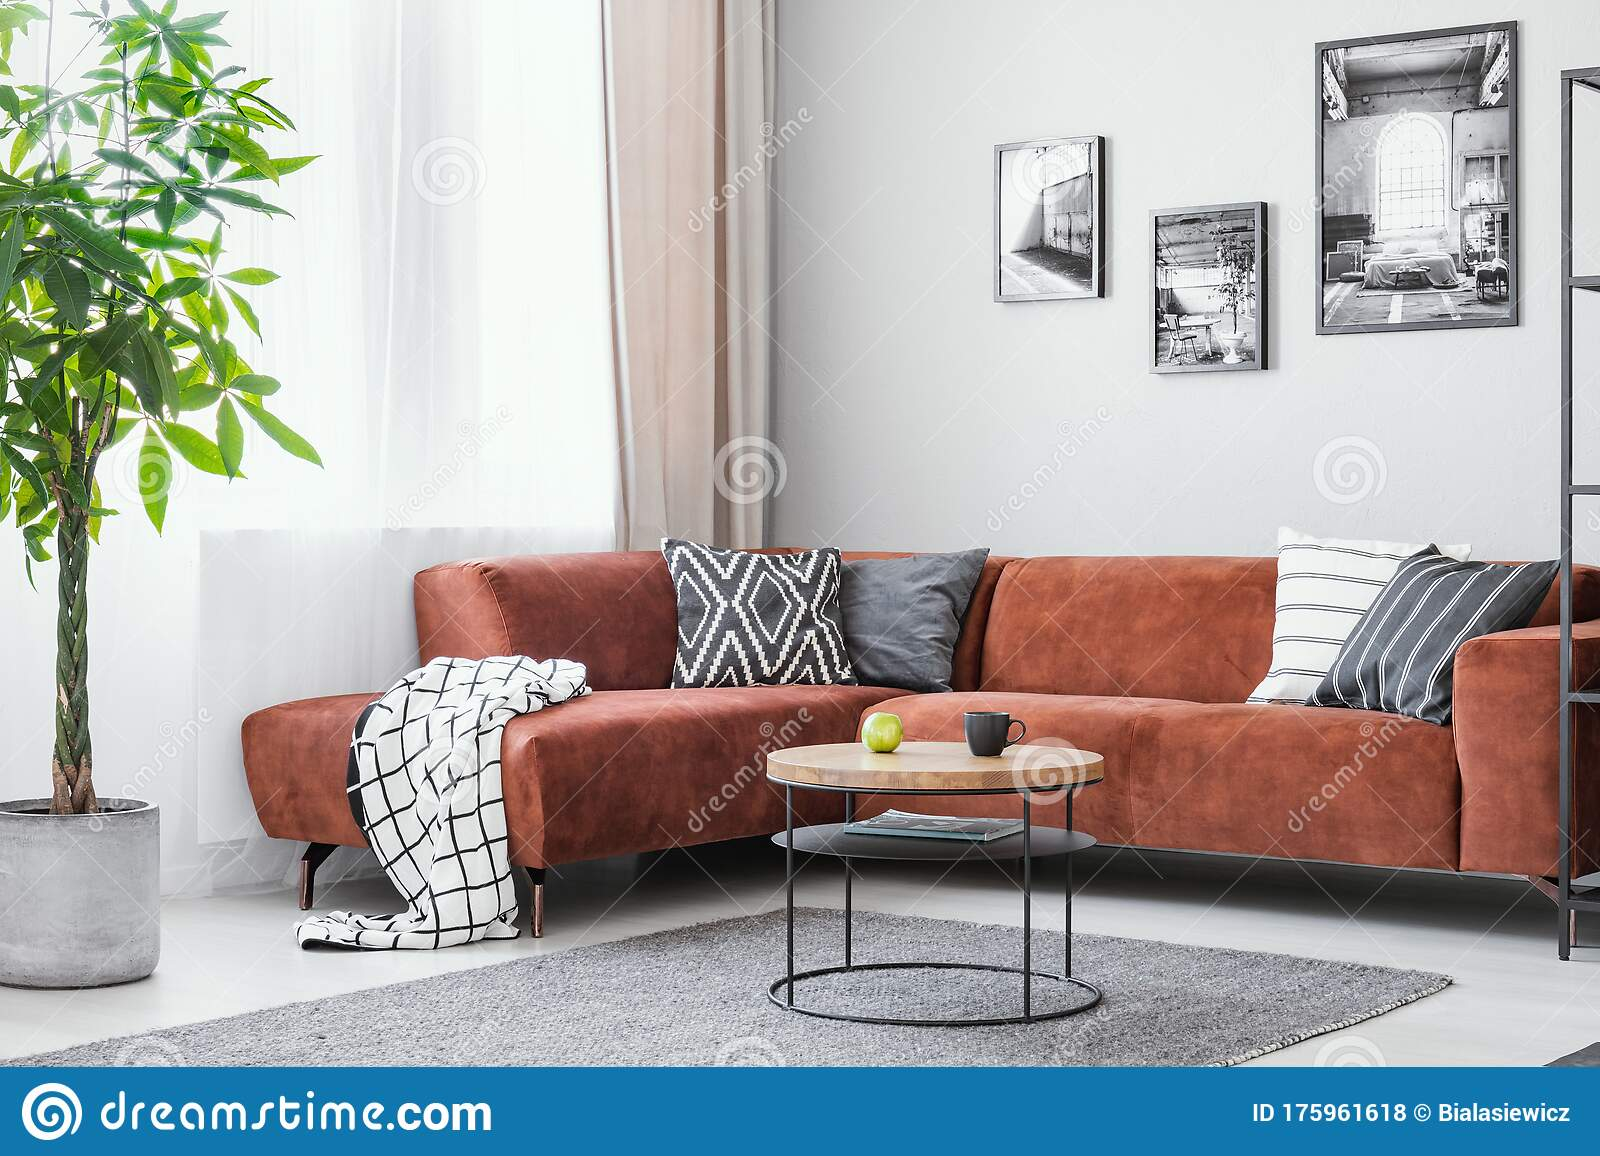 Big Green Plant Small Round Coffee Table And Corner Sofa In Elegant Living Room Interior Stock Photo Image Of Couch House 175961618